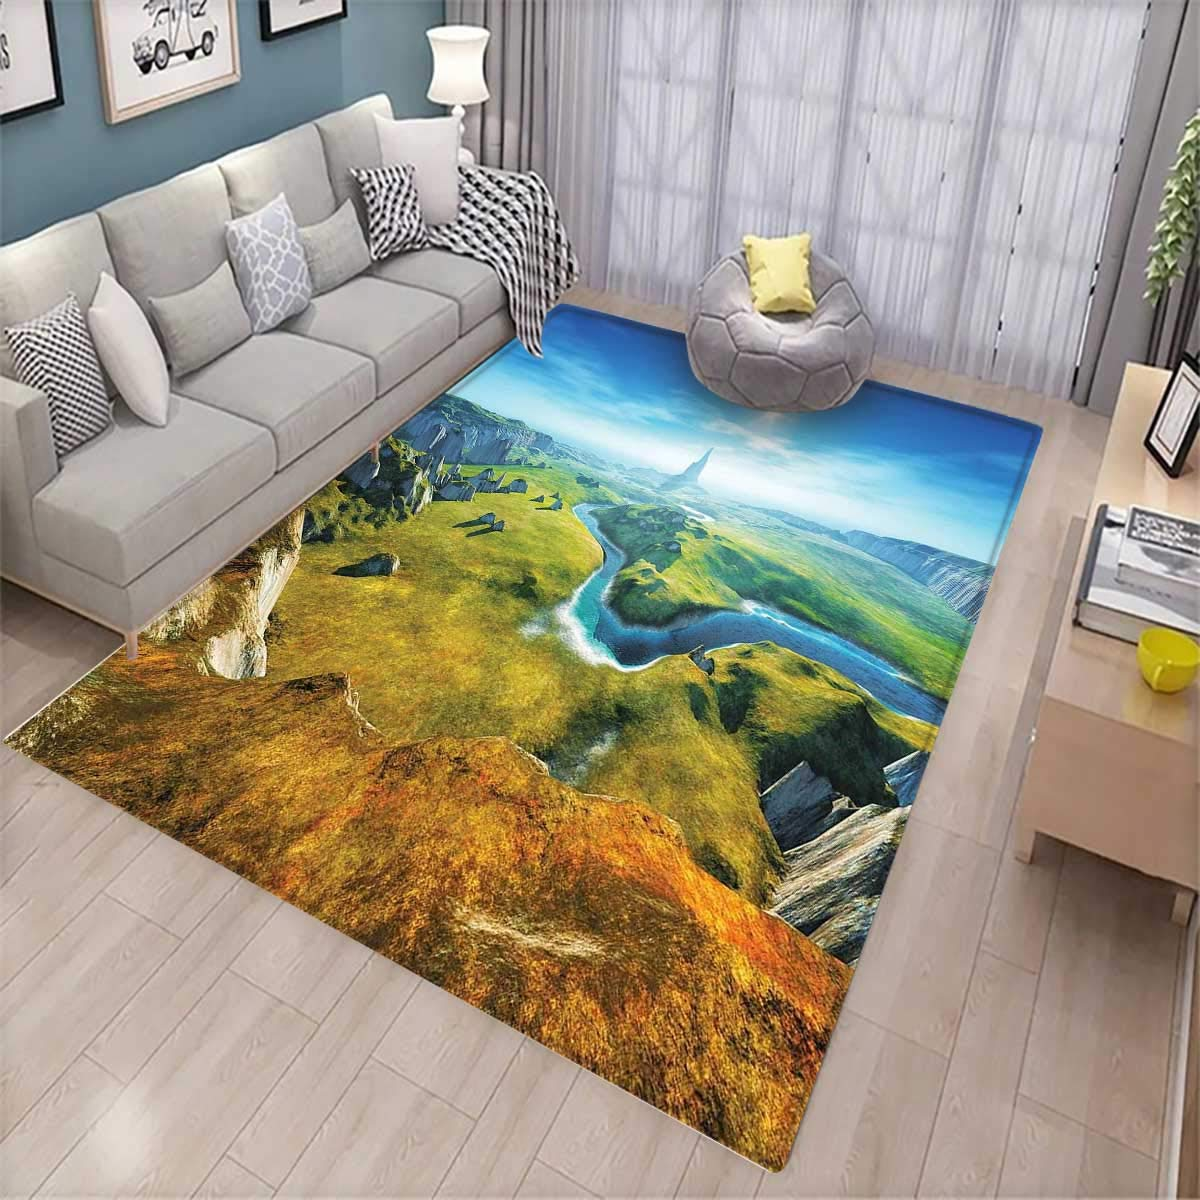 Landscape Customize Door mats for Home Mat 3D Style Colorful Magical Outdoors River Rocks Cliffs Fresh Grass Hiking Door Mat Outside Blue Green Grey